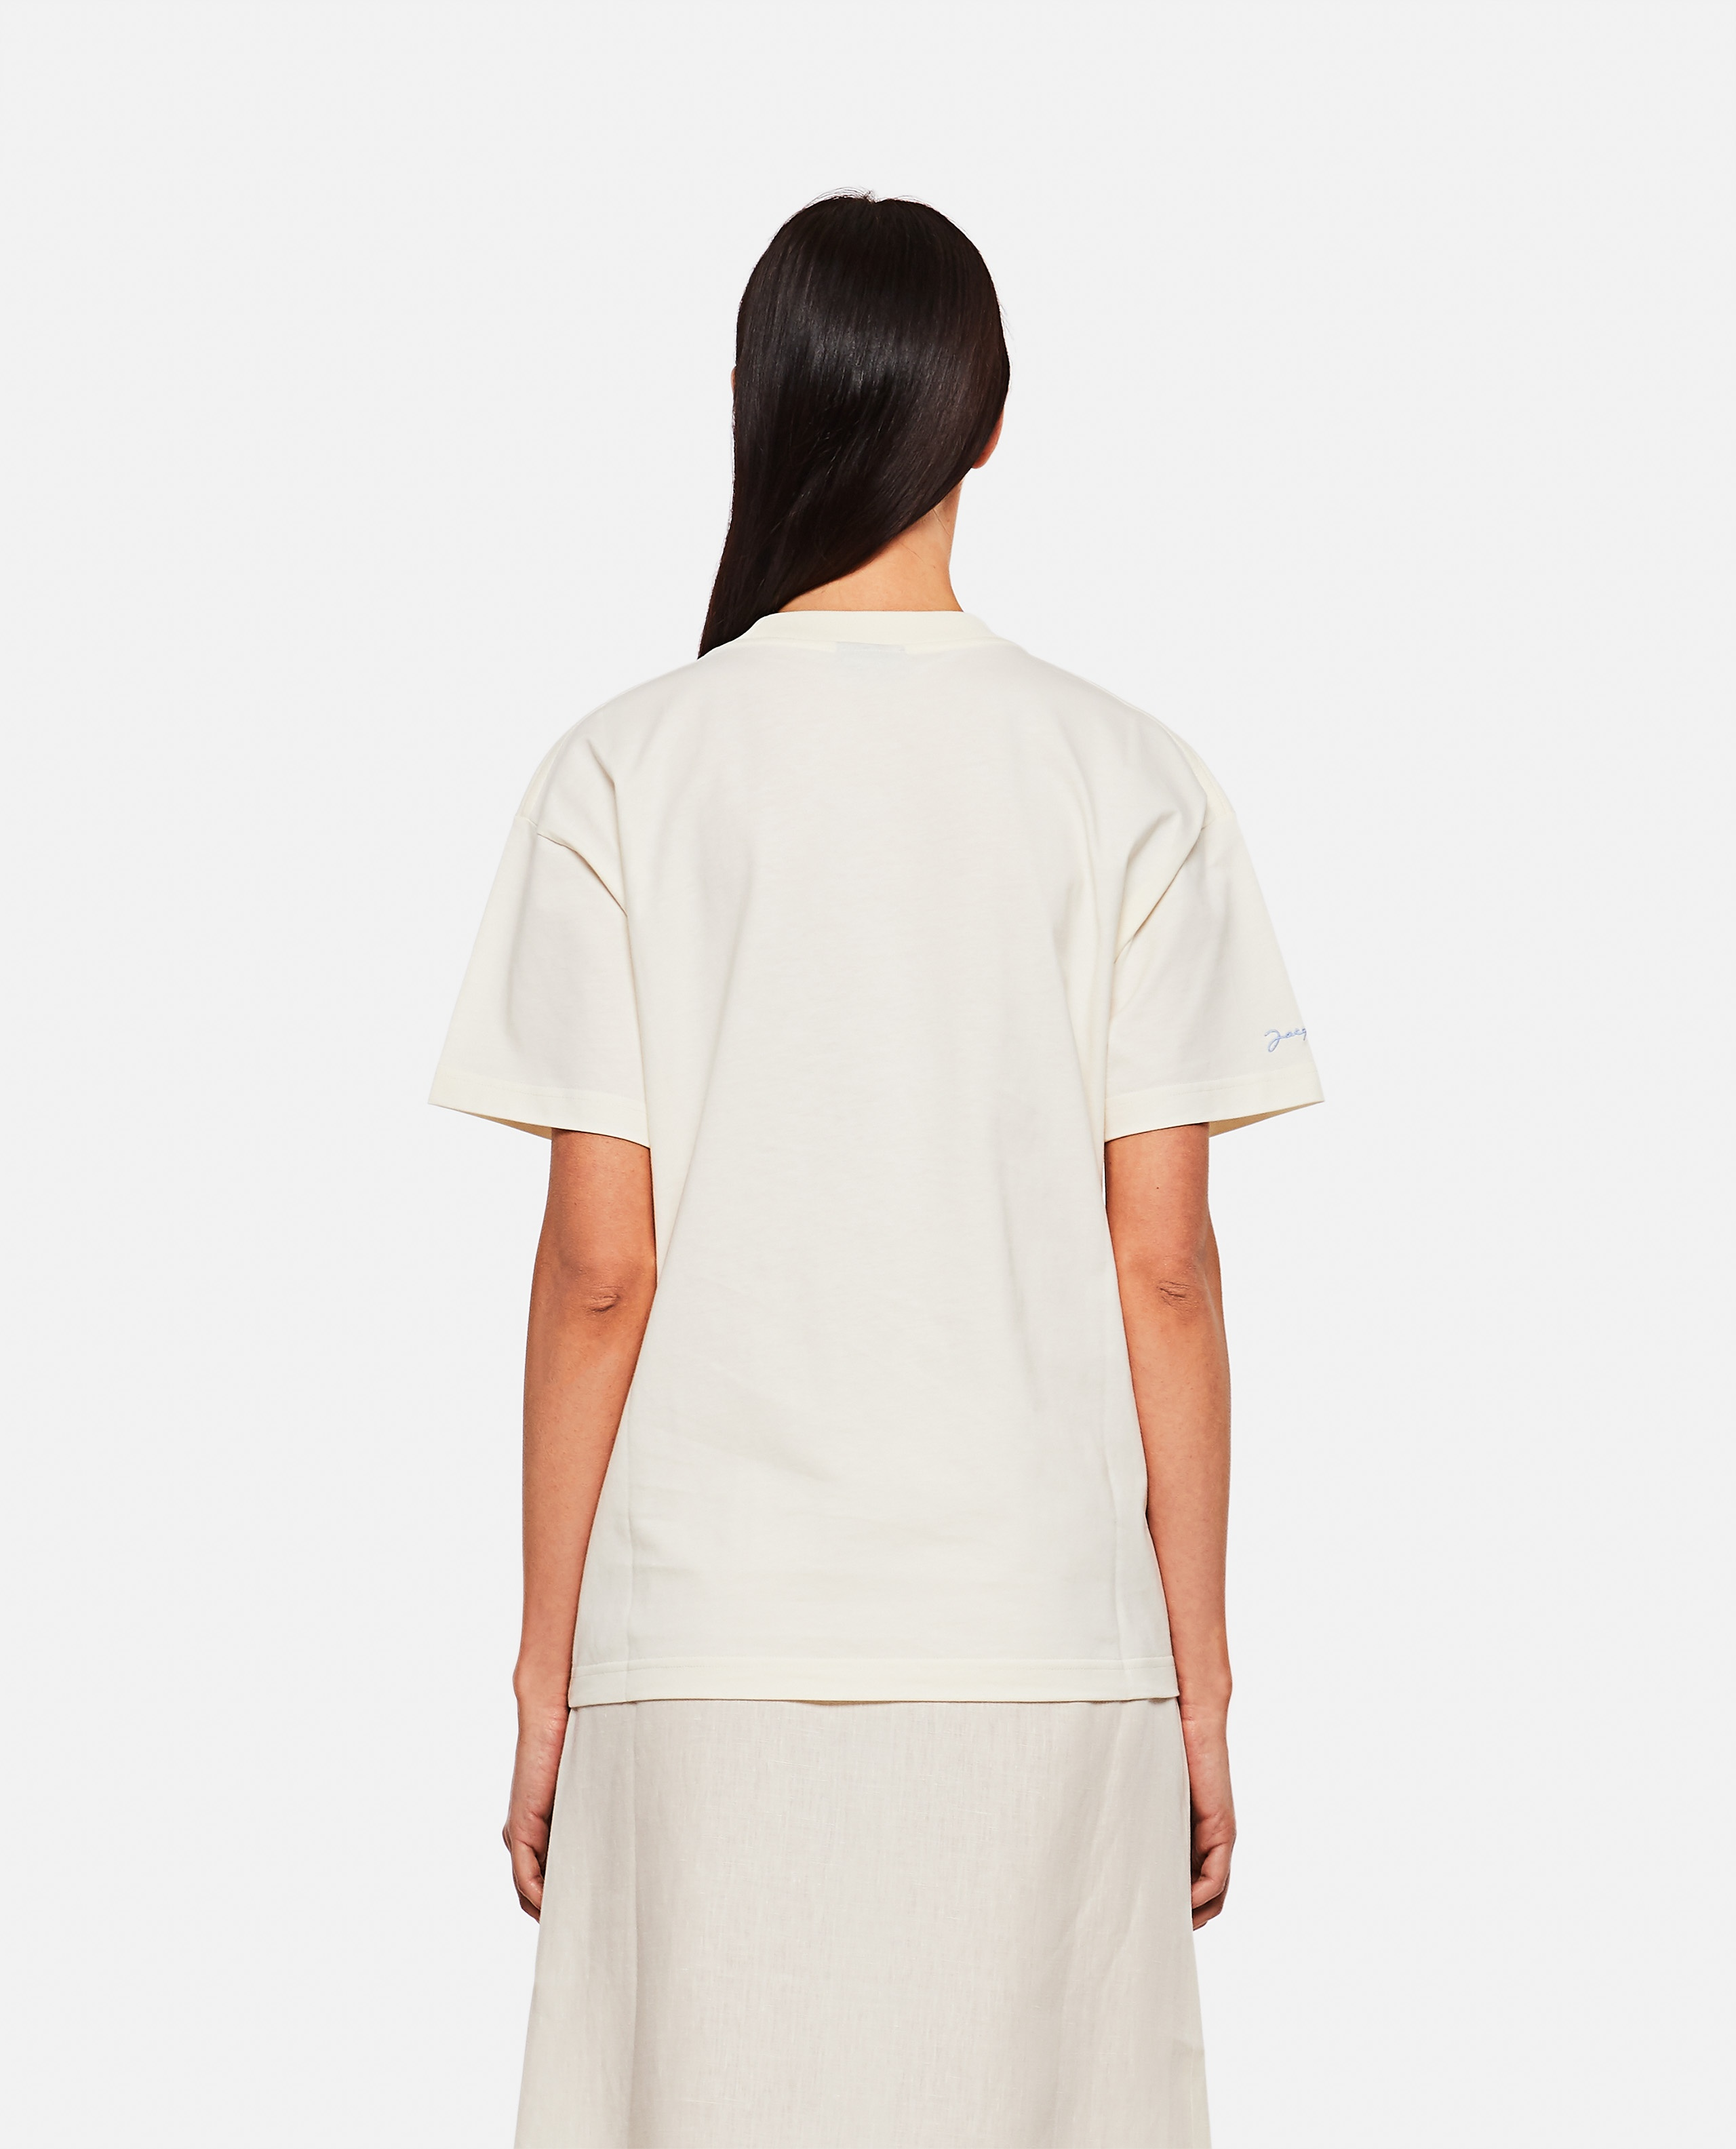 T-shirt in cotone con stampa Donna Jacquemus 000302330044401 3